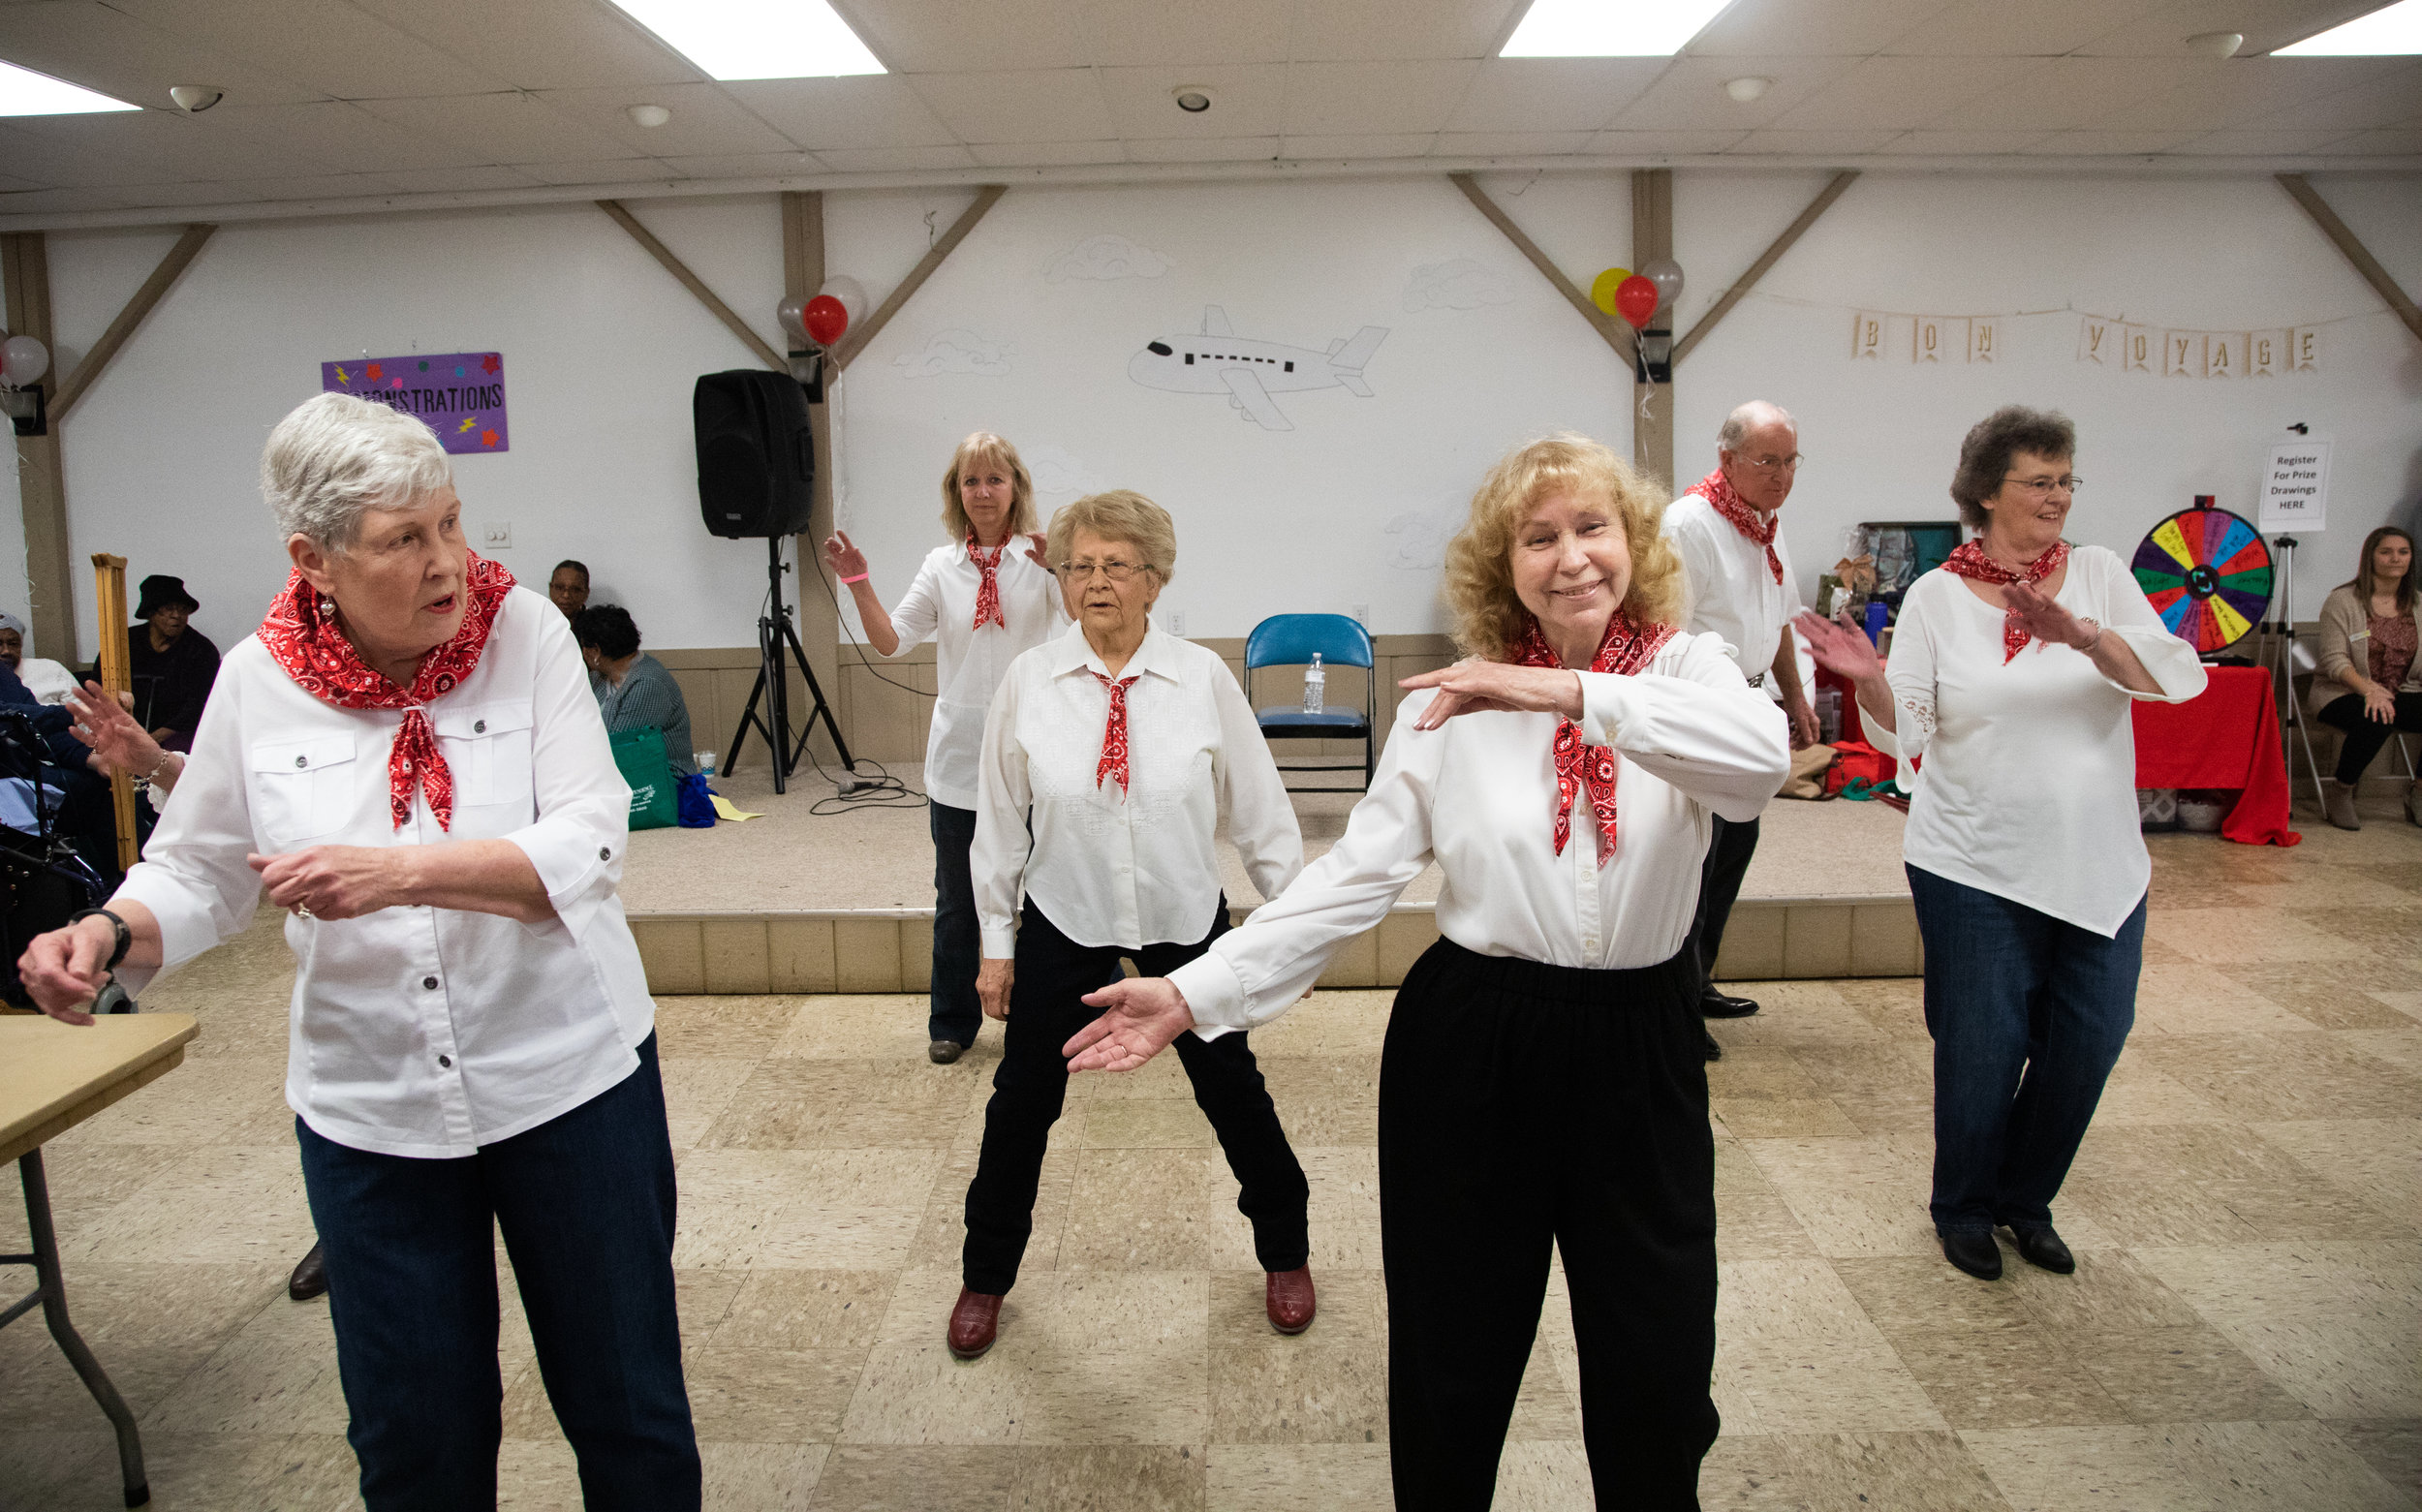 The Bedford County Line Dancers perform at the 50+ Health Fair at the Forest Recreation Center on Friday Feb. 22, 2019 in Lynchburg, VA. The group has been dancing for about two and a half years and has about 25 active members.